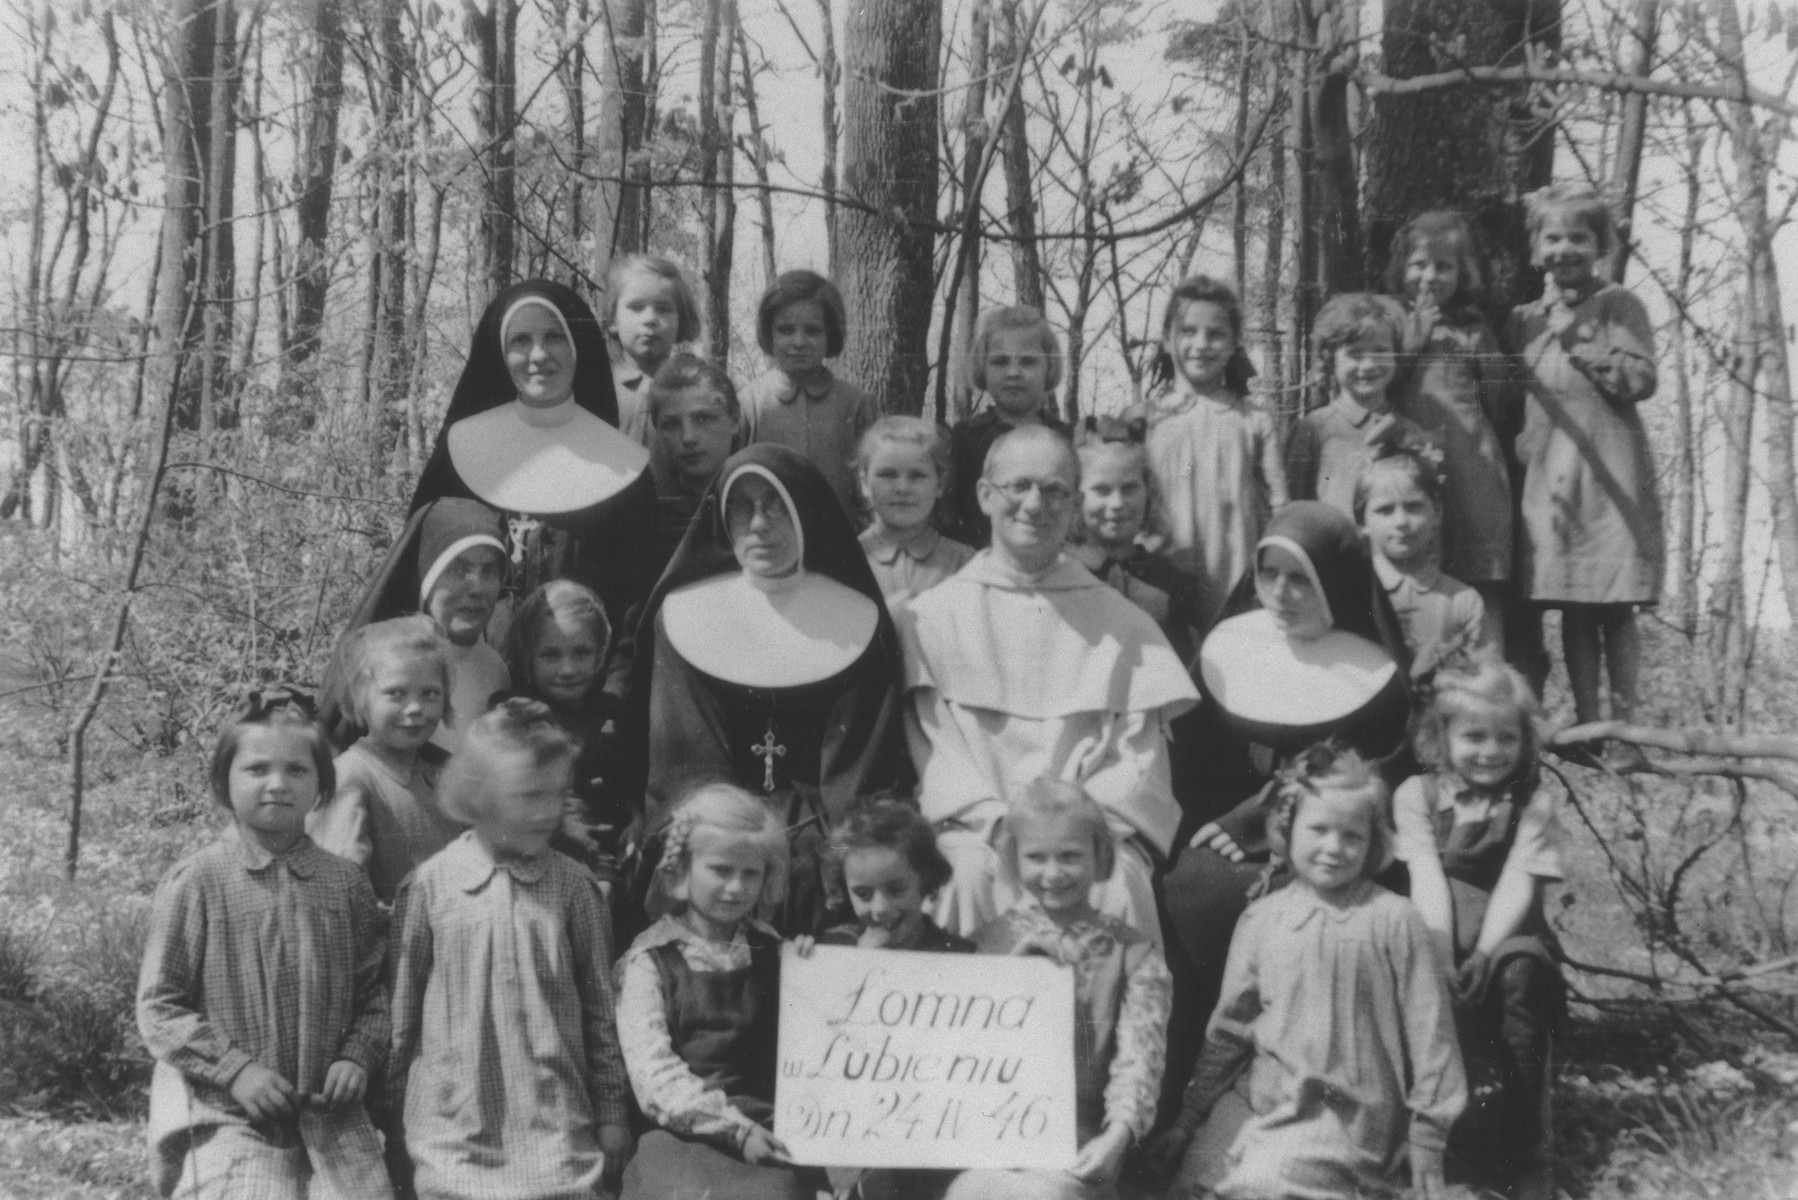 A priest and several nuns pose with a group of children at a Franciscan convent school in Lomna, Poland where Jewish children were hidden during the German occupation.  Among those pictured are Tereska, a Jewish girl who remained at the convent after the liberation when no one came to claim her (front row, center); Sister Blanka Pigowska (second row from the front, far right); Sister Tekla Budnowska (second row from the front, thrid from the right);and Sister Zofia Olszewska (second row from the front, far left).